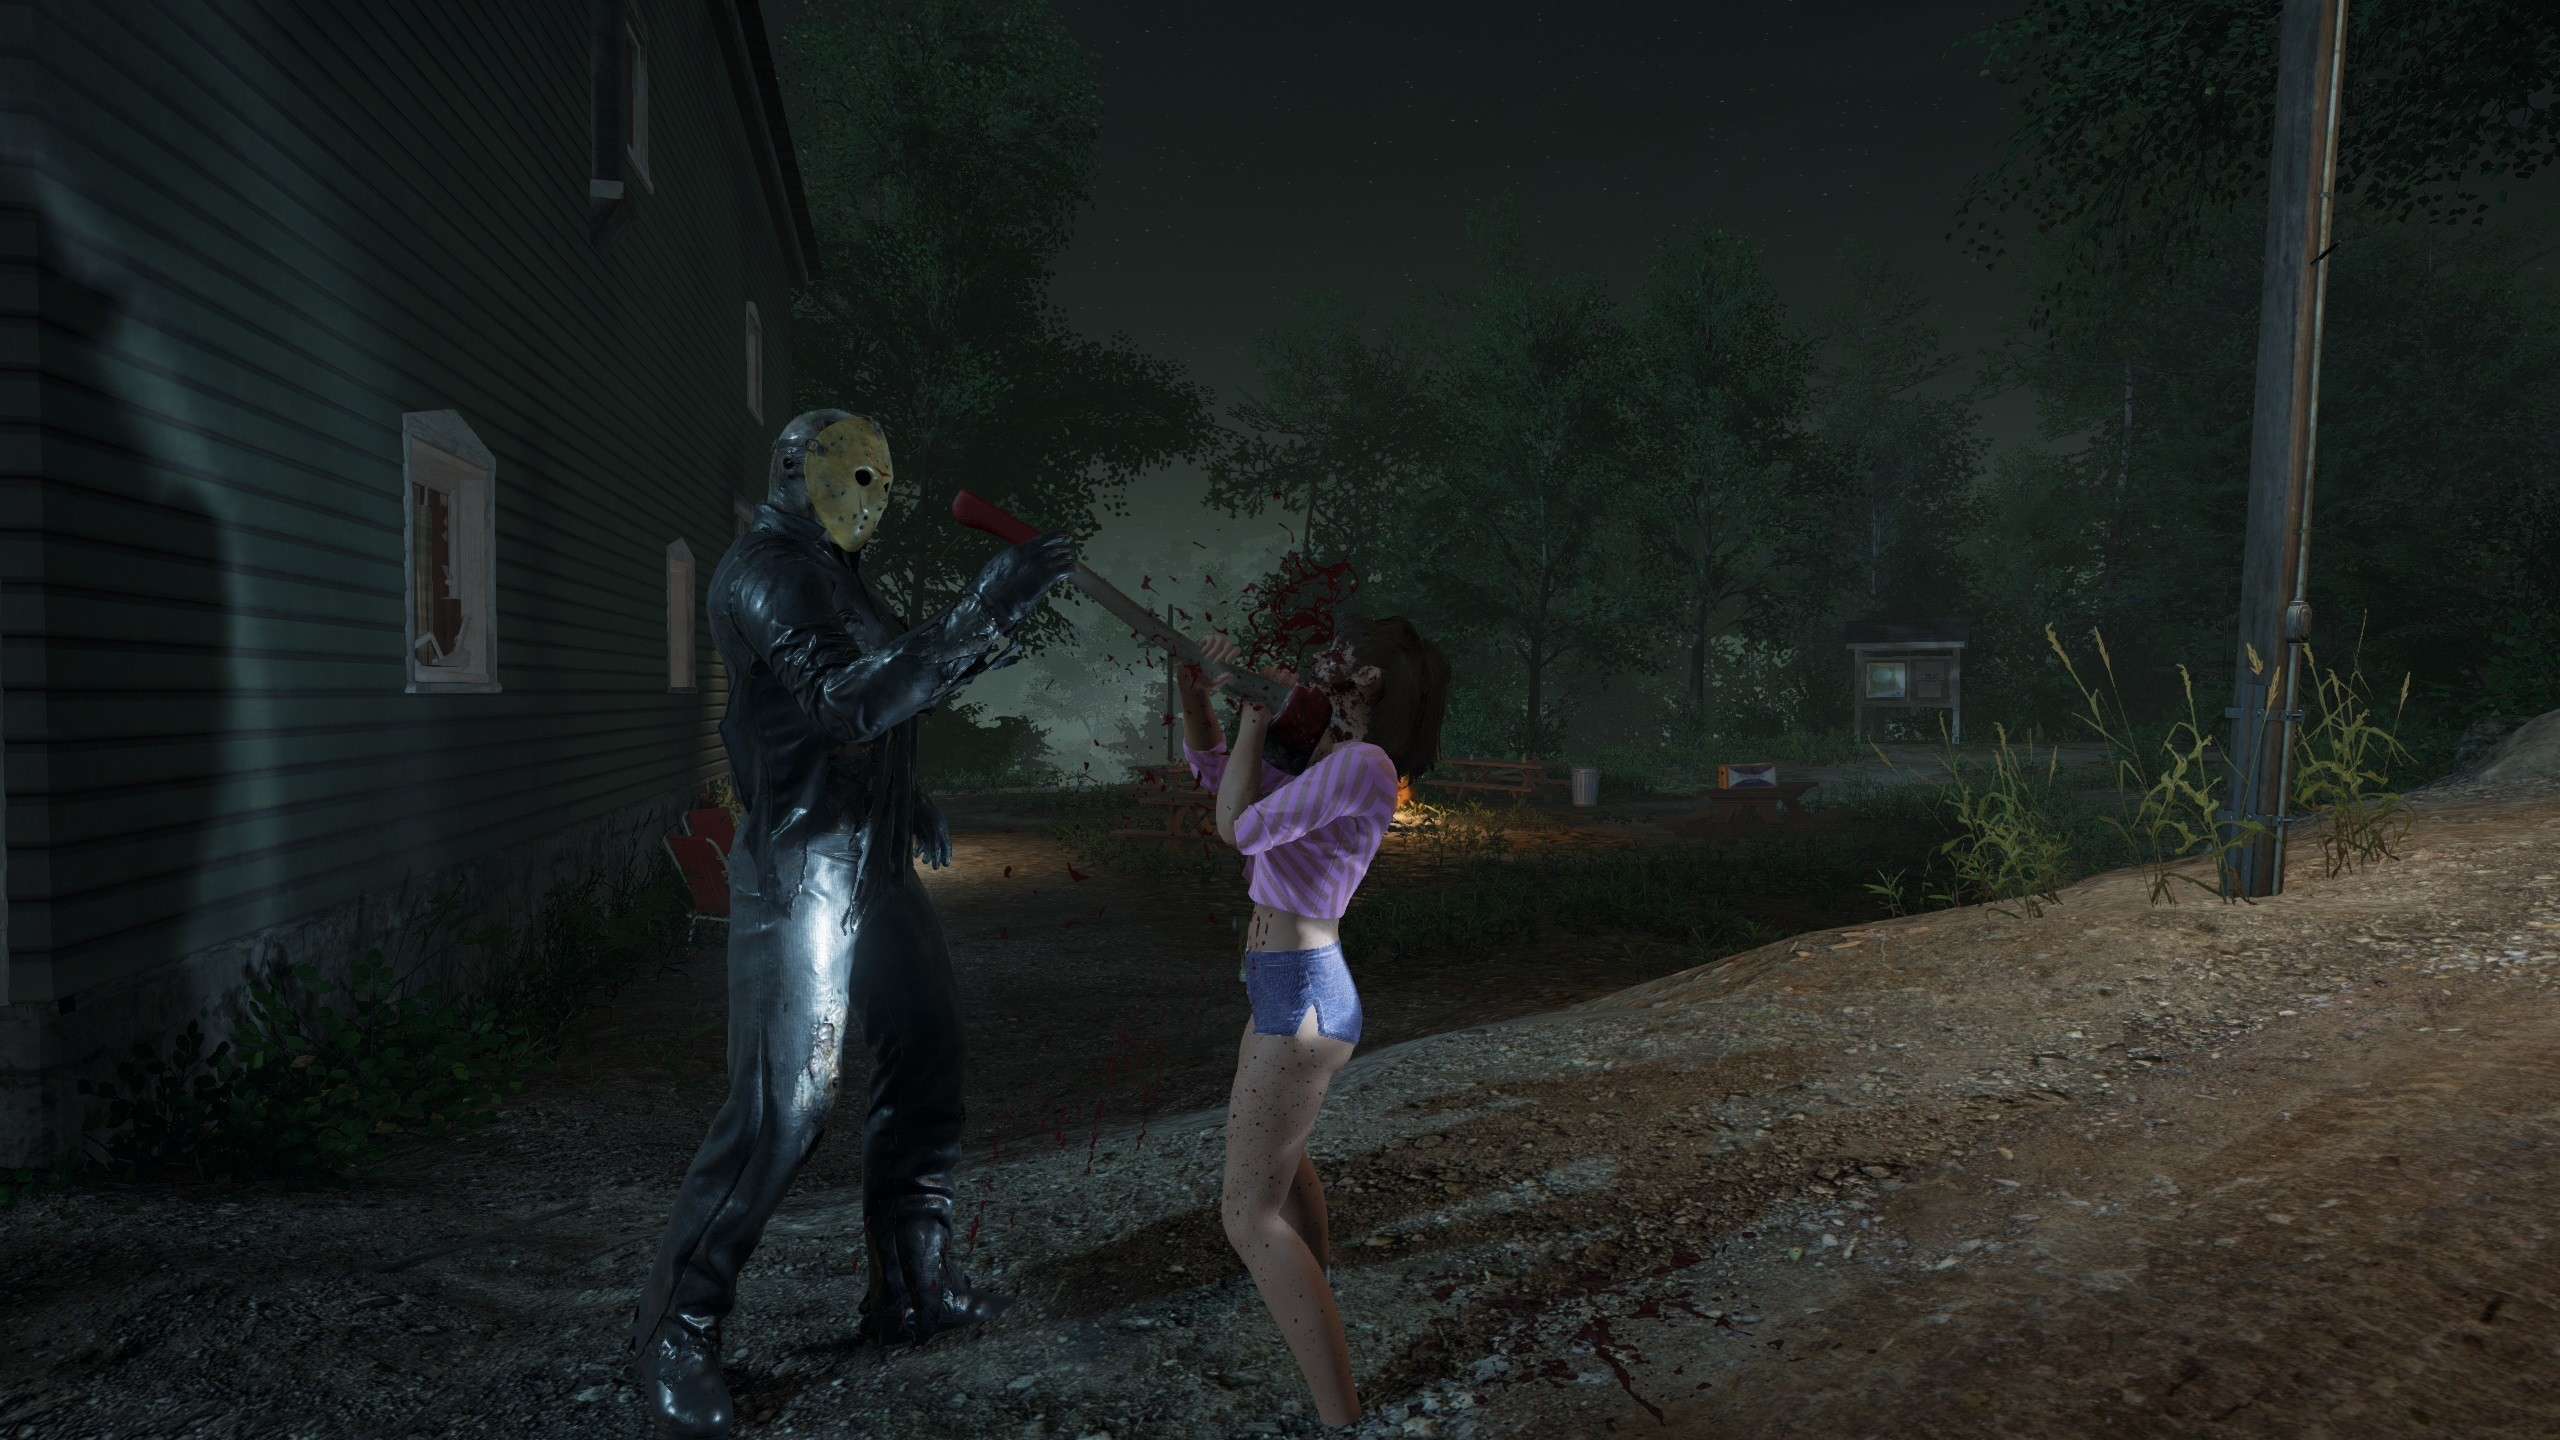 Res: 2560x1440, Friday the 13th: The Game HD Wallpapers 21 - 2560 X 1440